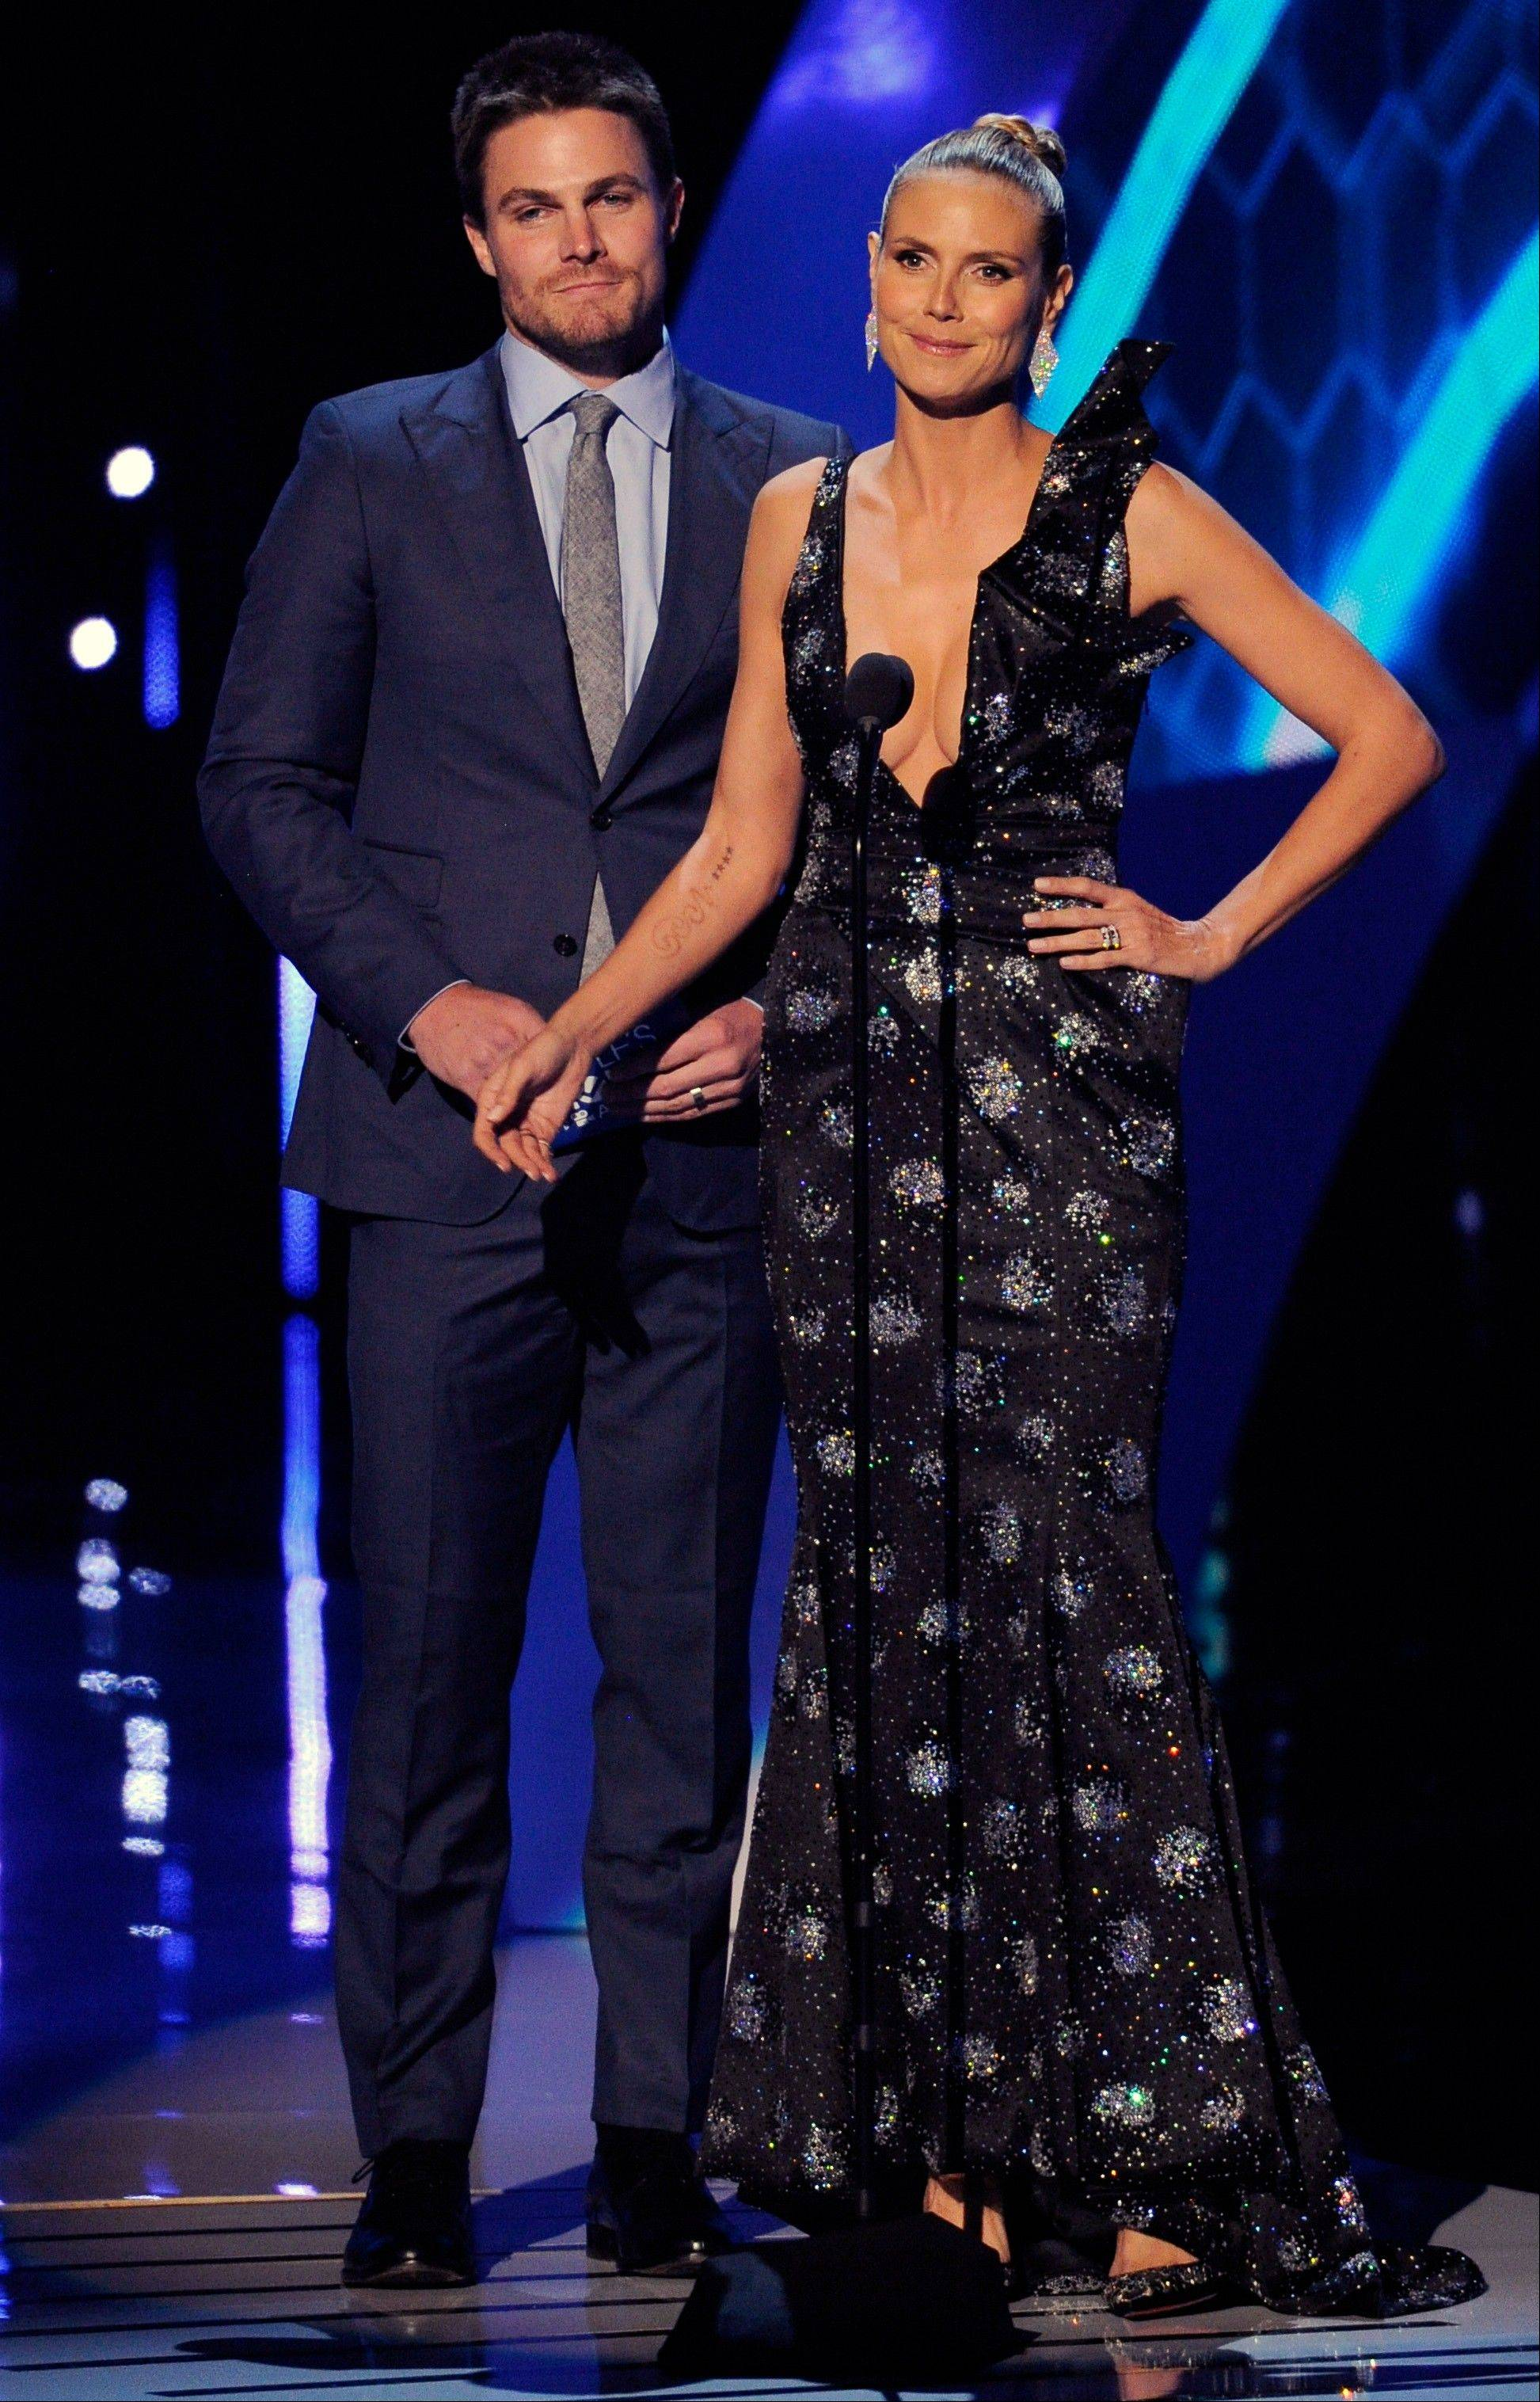 Associated PressStephen Amell, left, and Heidi Klum present the award for favorite pop artist at the 40th annual People's Choice Awards Wednesday in Los Angeles.